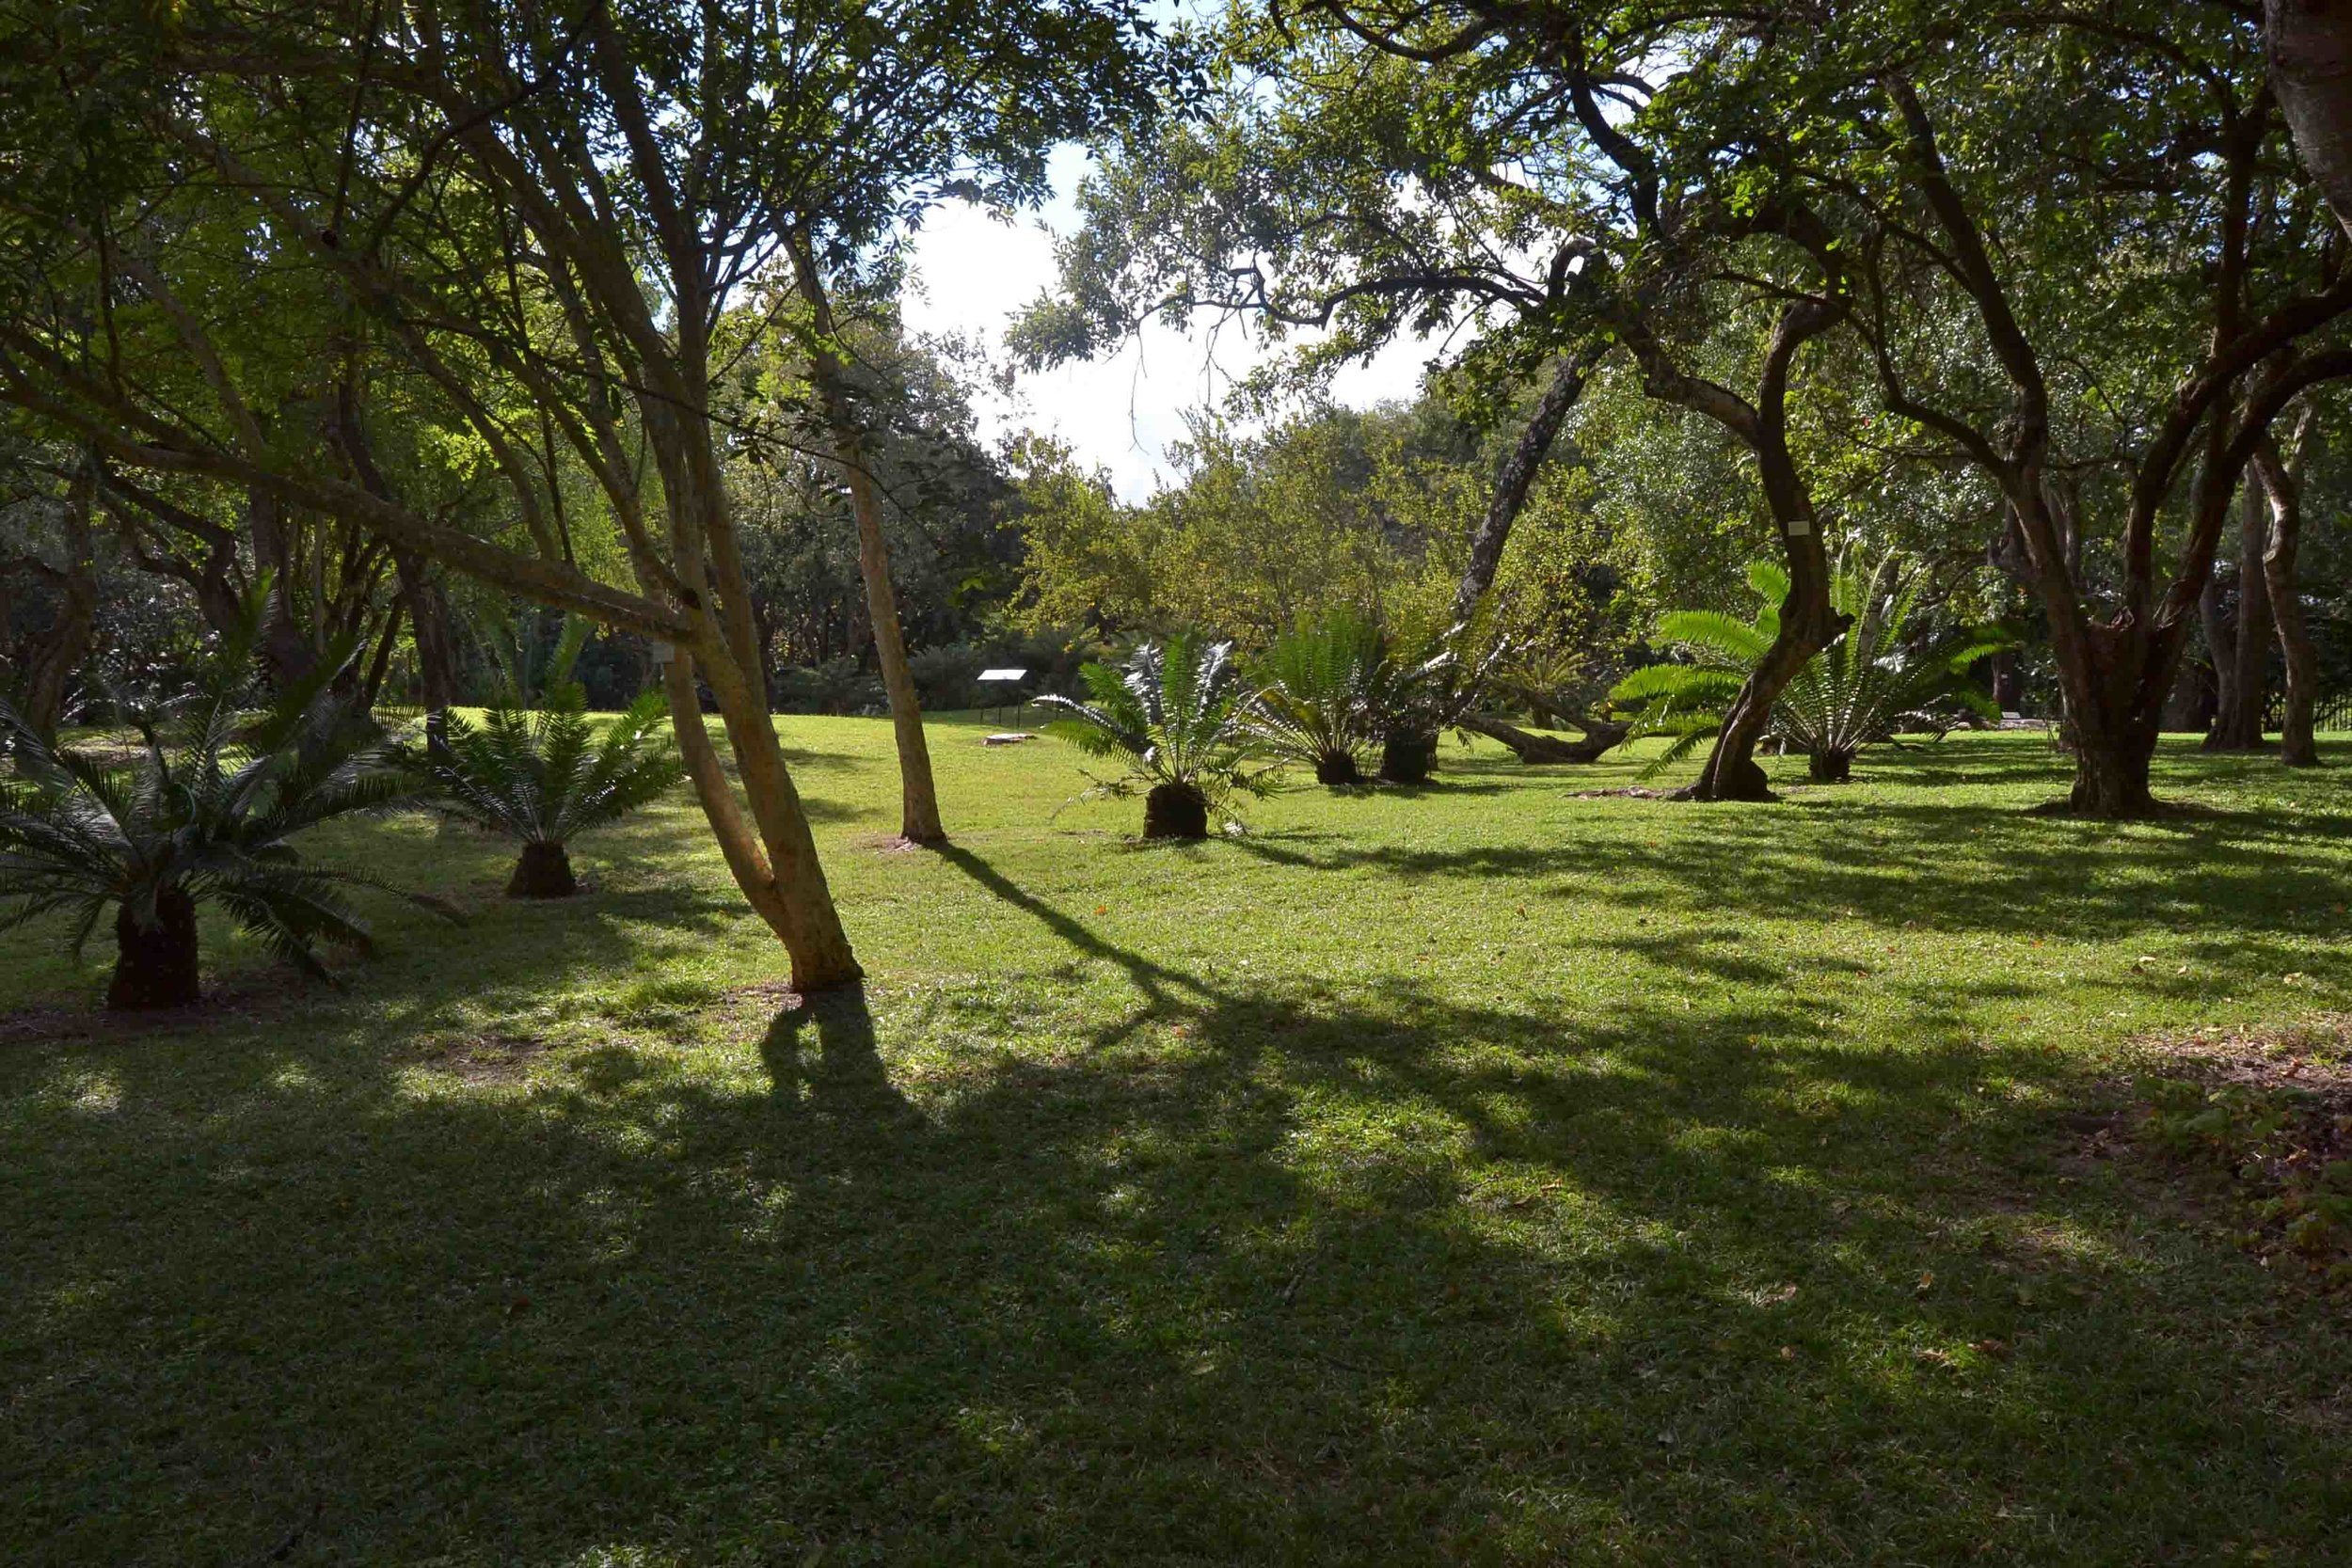 Large areas of Lawn with Cycads and Trees